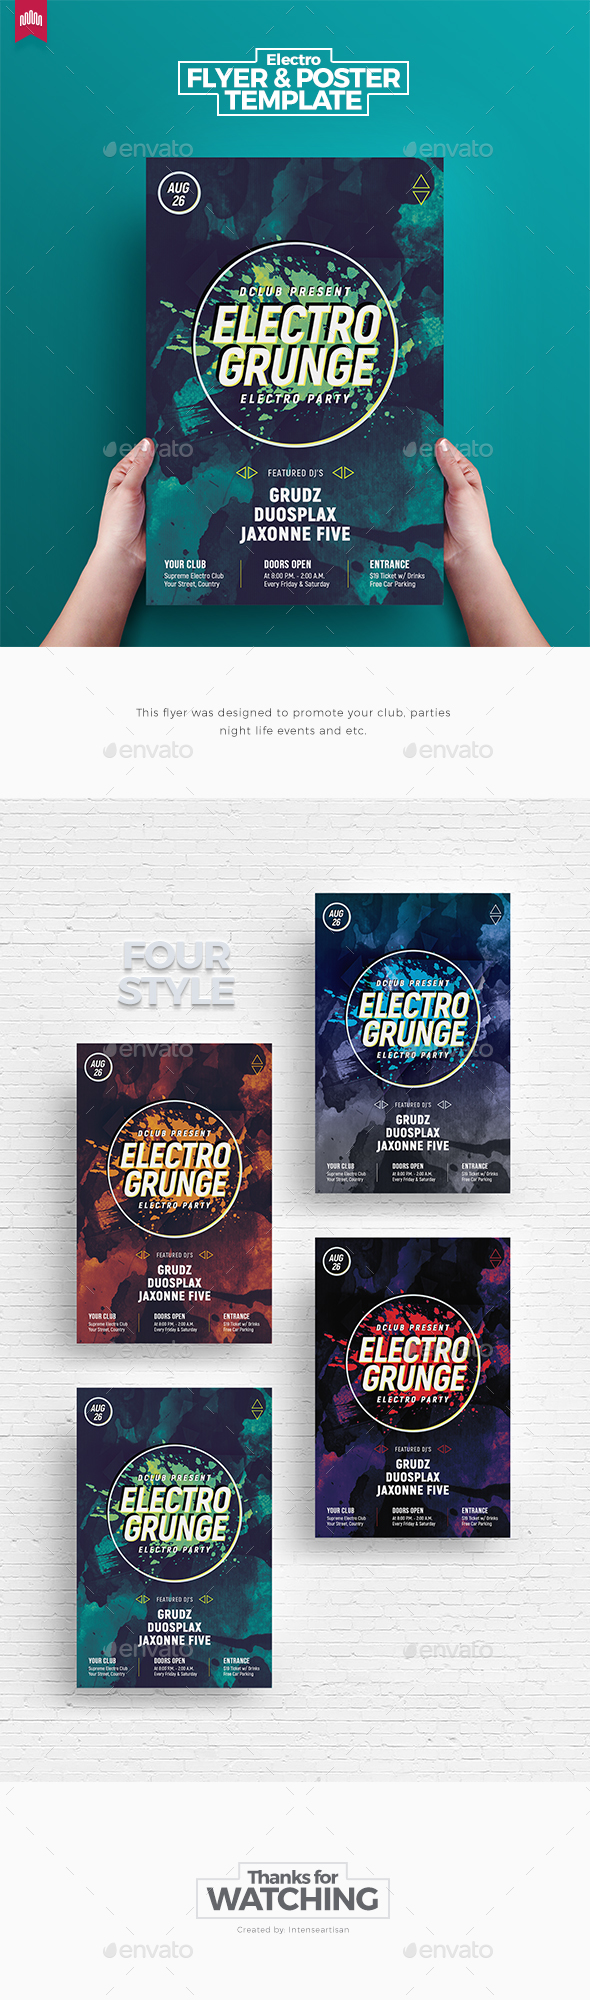 Electro Grunge - Flyer Template - Clubs & Parties Events